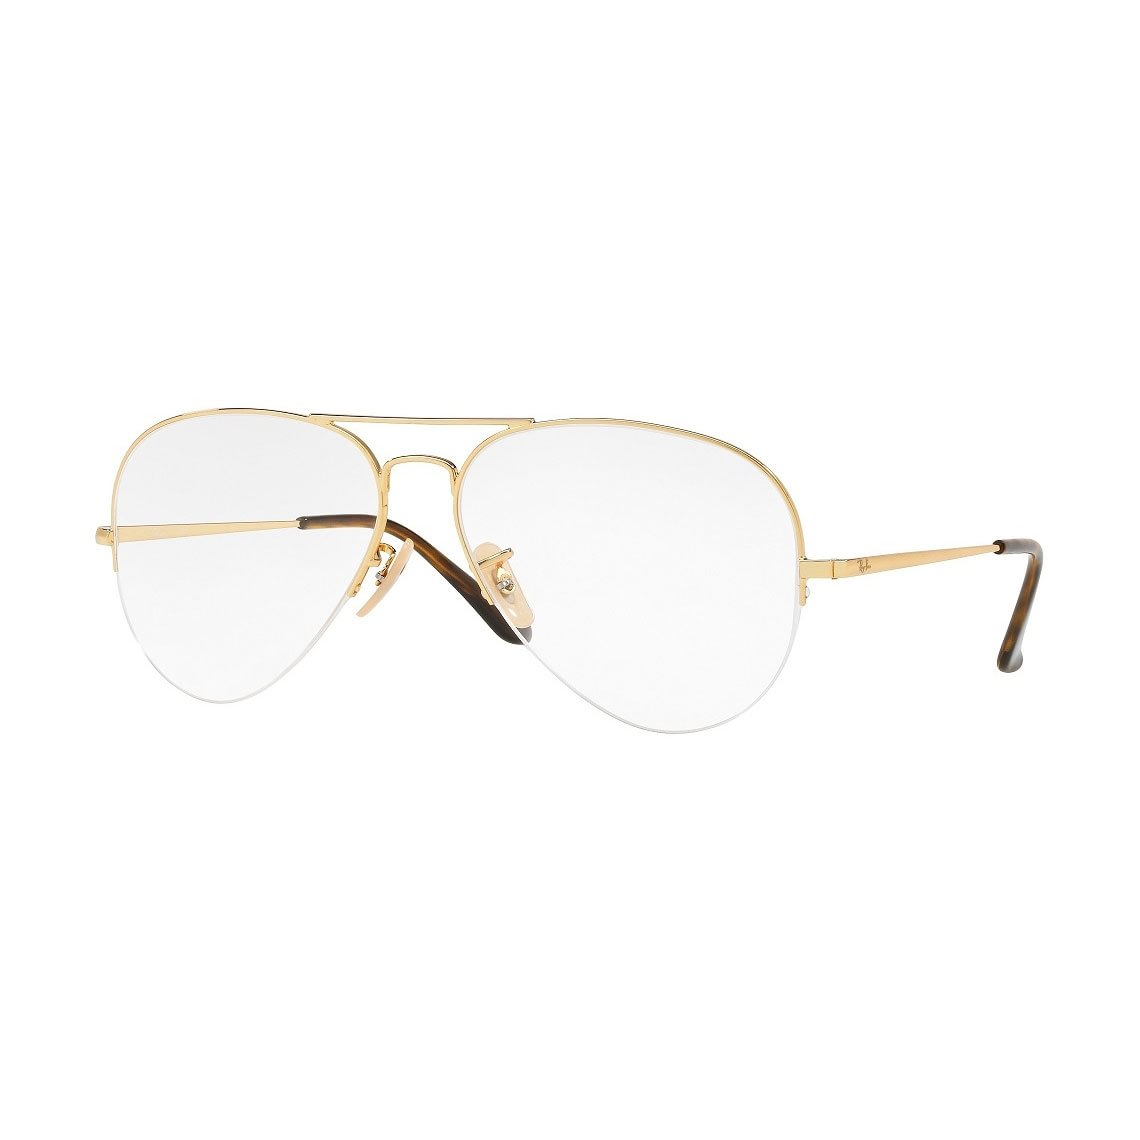 Ray-Ban Aviator Gaze RX6589 2500 5915